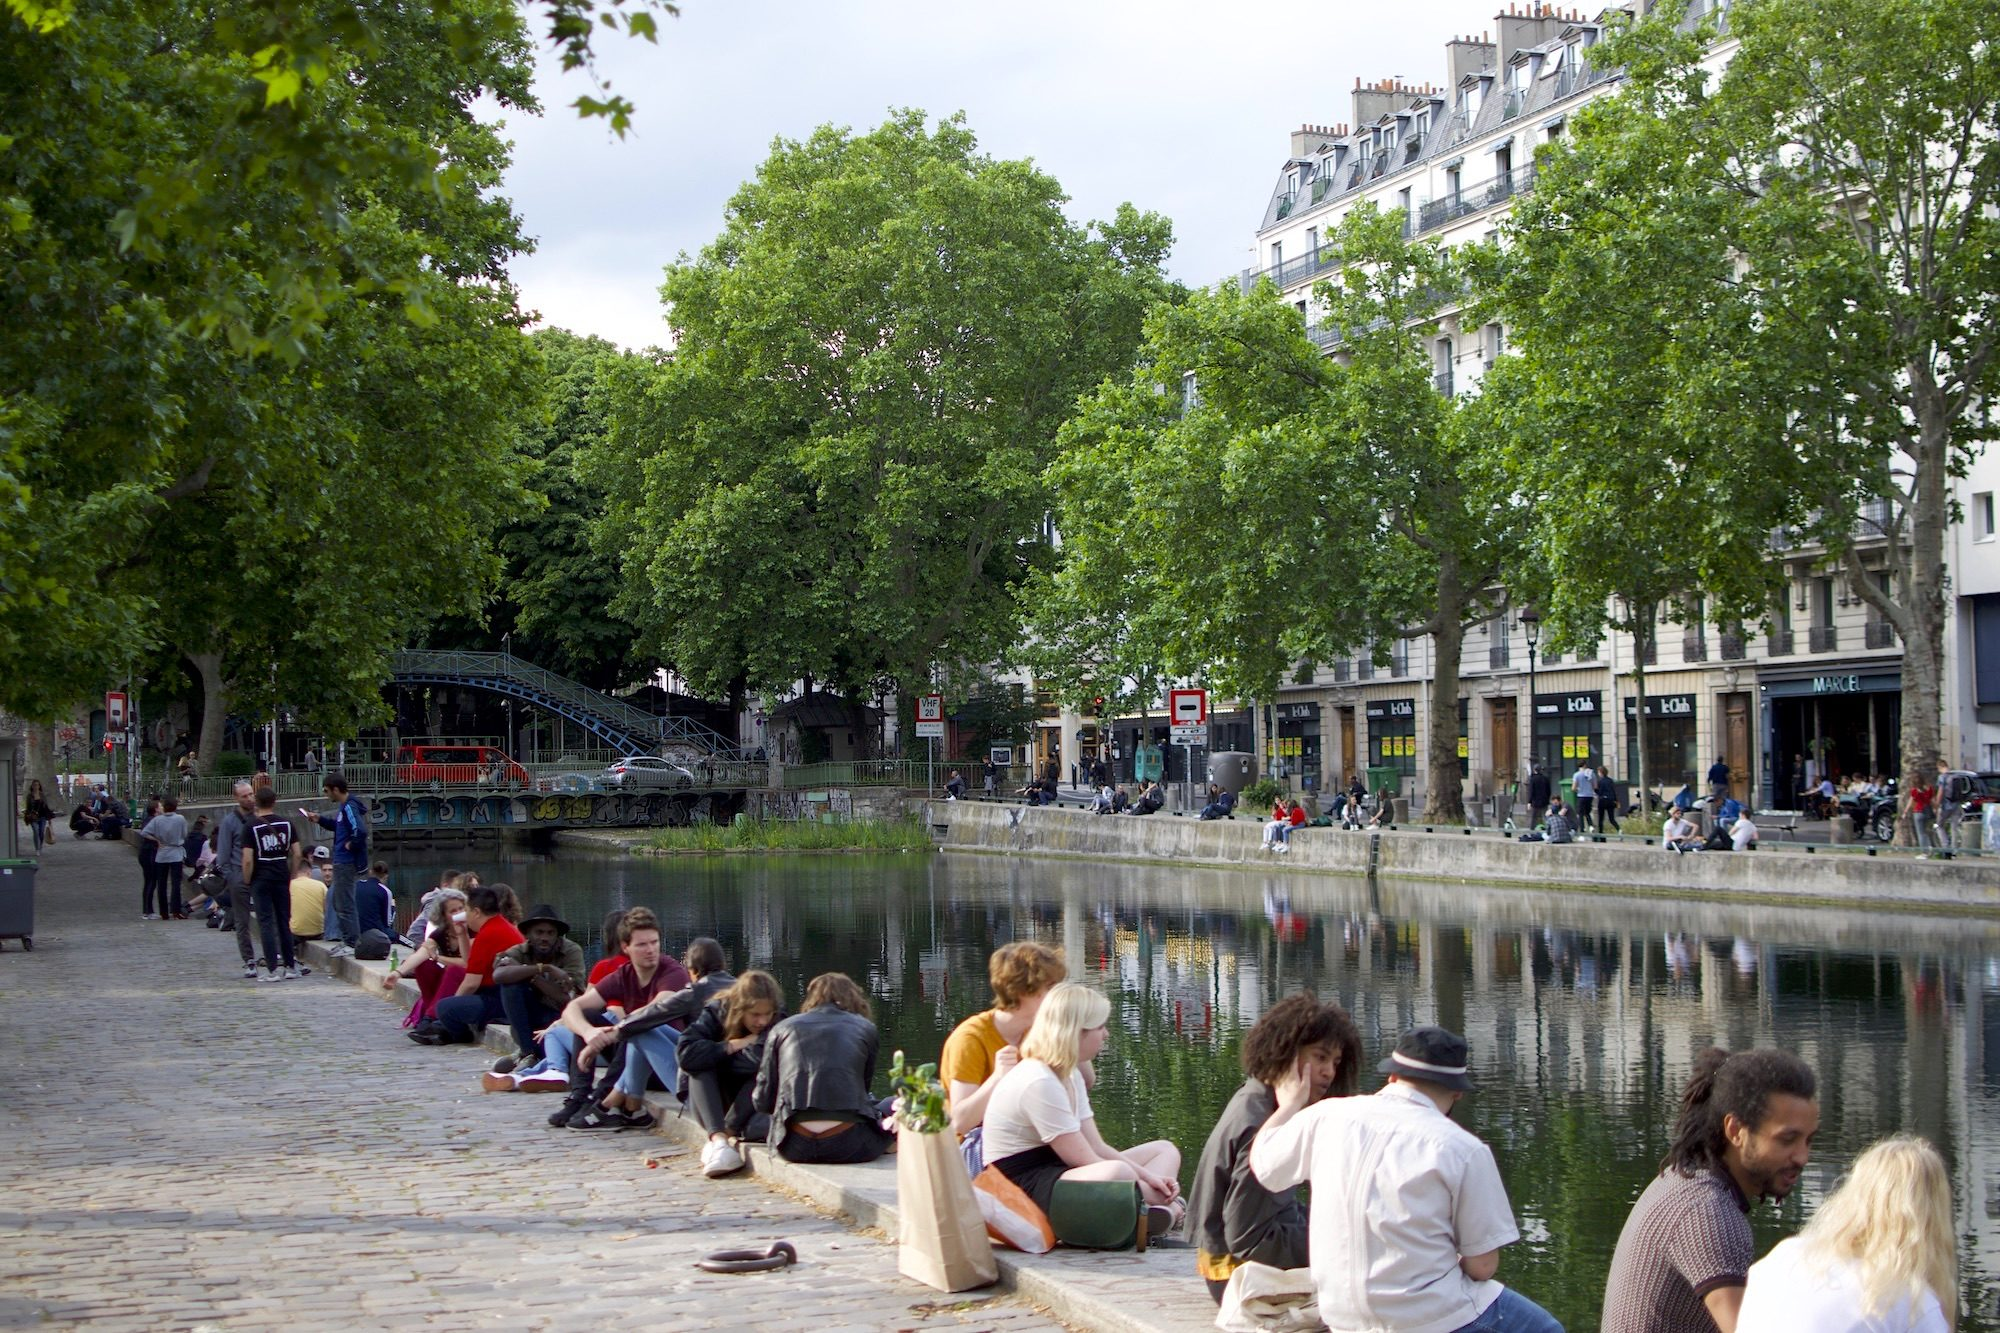 Locals love to come and relax by the water on the banks of the Canal Saint Martin in Paris.